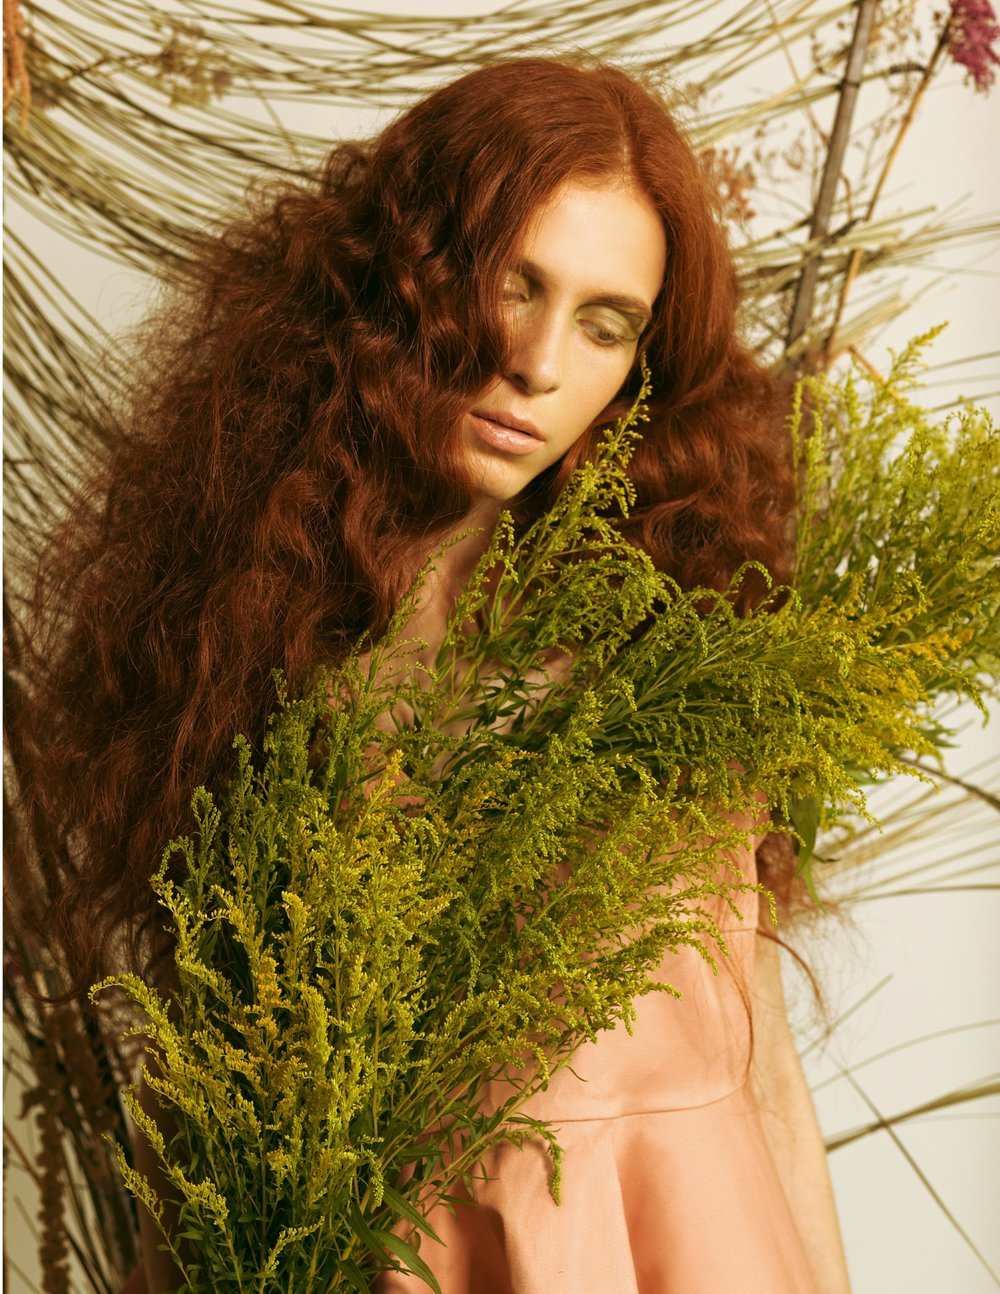 Florum Fashion Magazine - 5 natural organic hair care brands you need to know